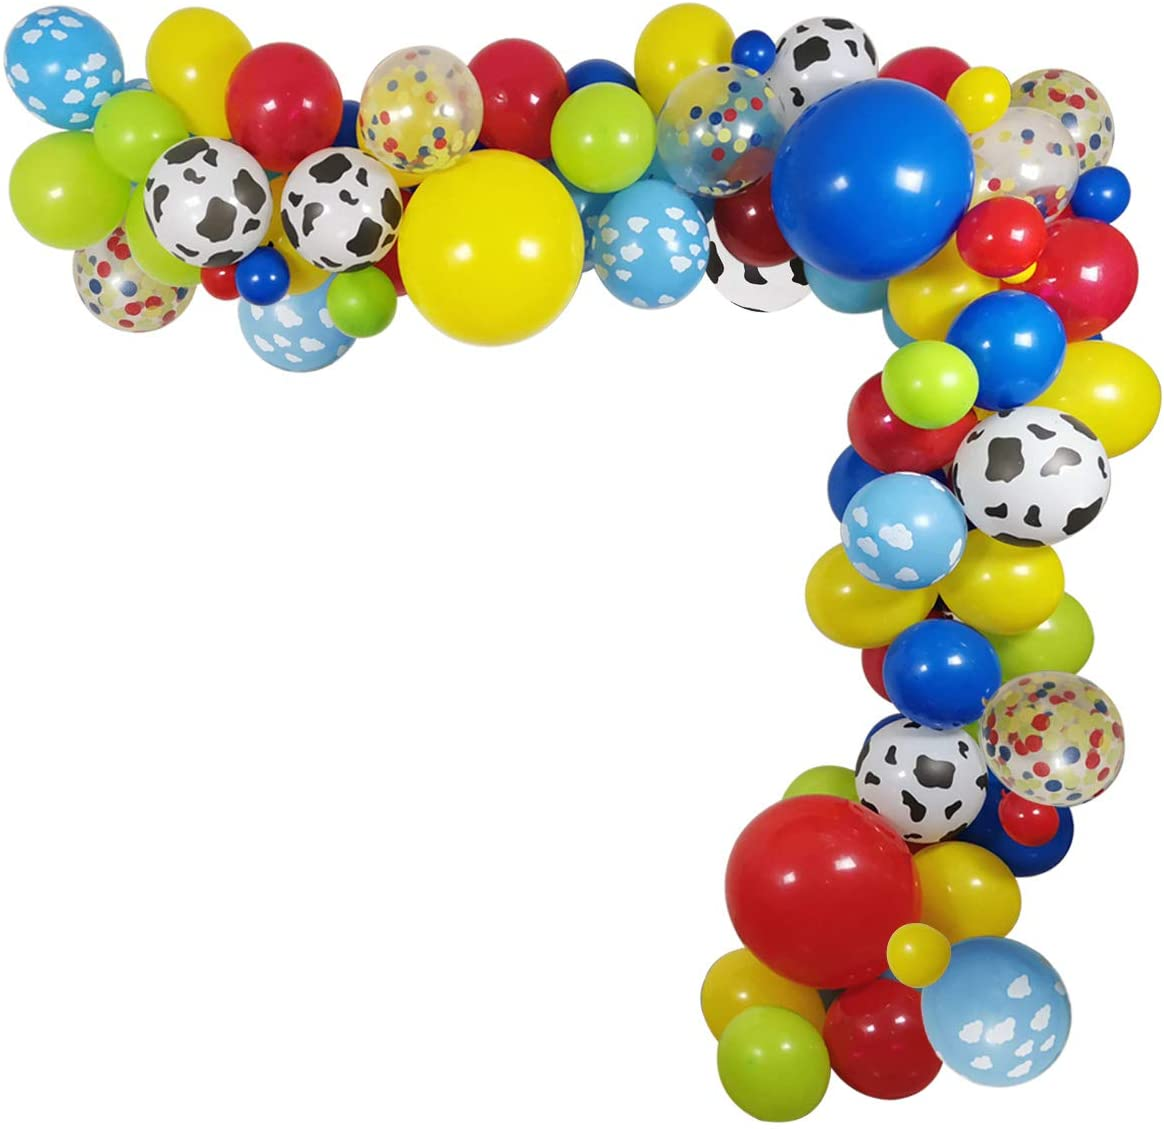 100 Pack Toy Story Party Birthday Balloons Arch Garland, Halloween Costume 12 INCH Cow Pattern Printed Yellow Red Blue Green Latex Balloons for Kids Birthday 1st 3rd 6th Baby Shower Decorations